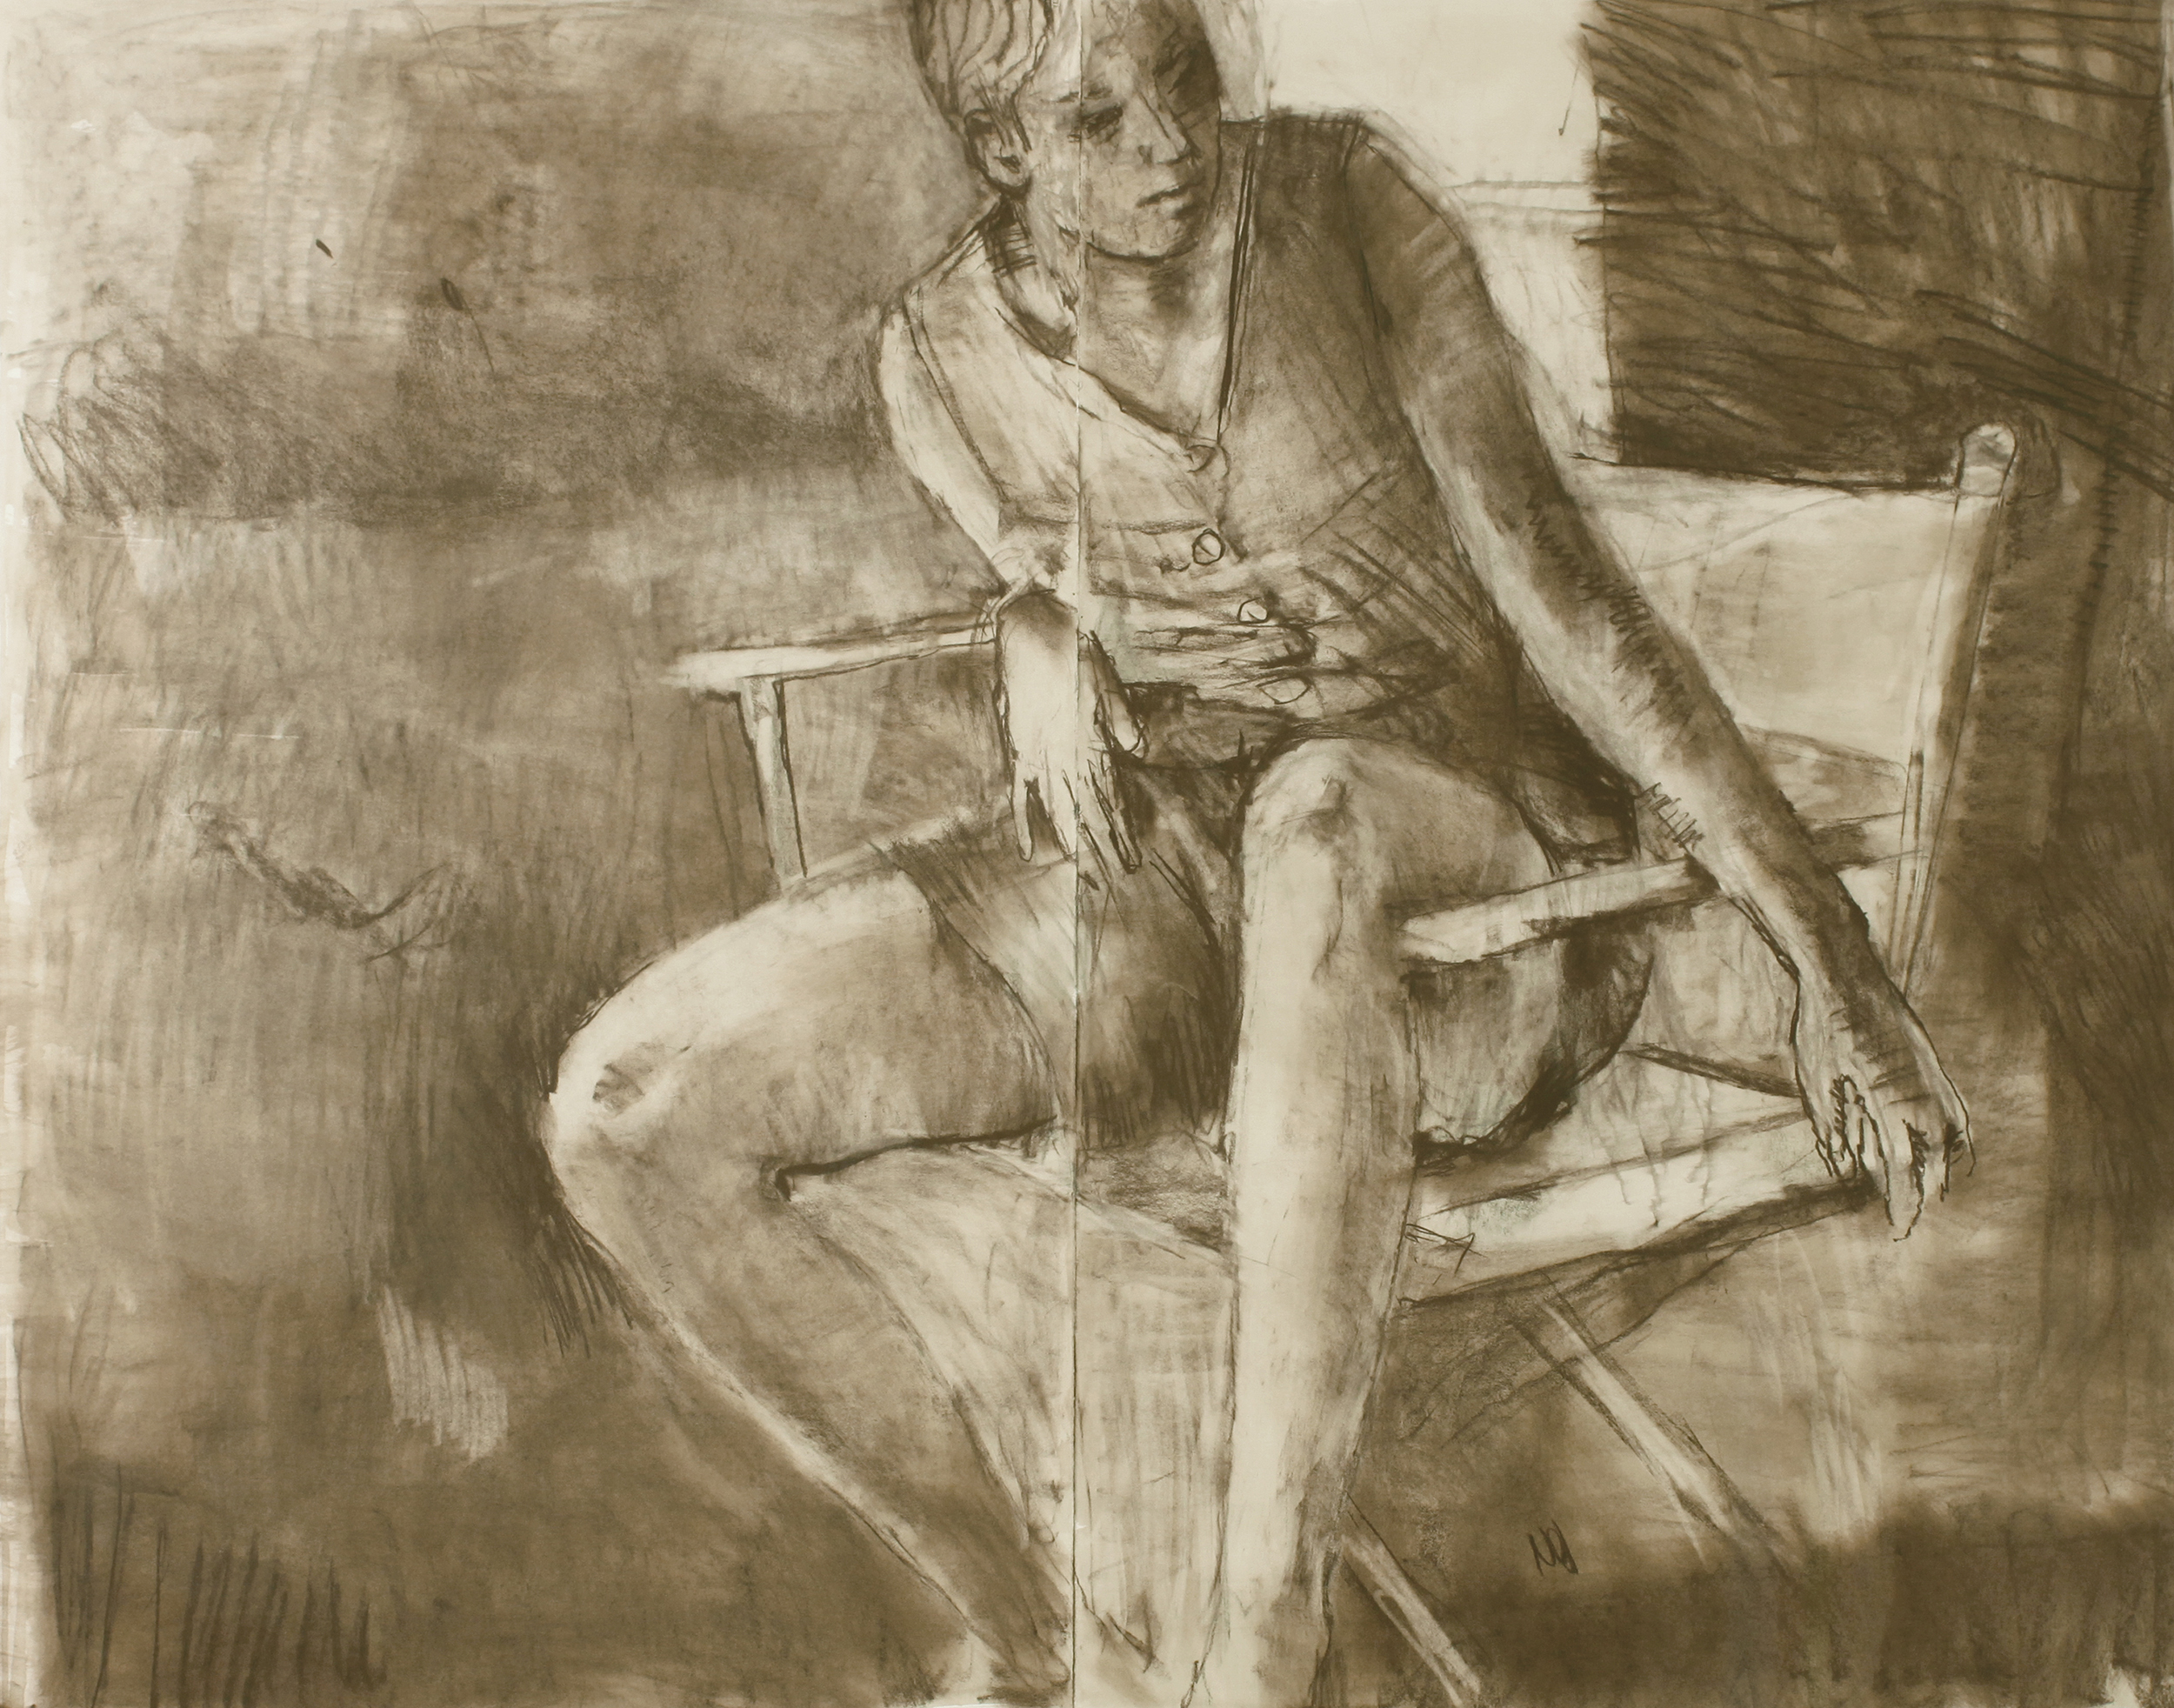 1989_Seated_Girl_Sophie_in_Studio_watercolour_and_pastel_on_paper_41x52in_WPF022.jpg